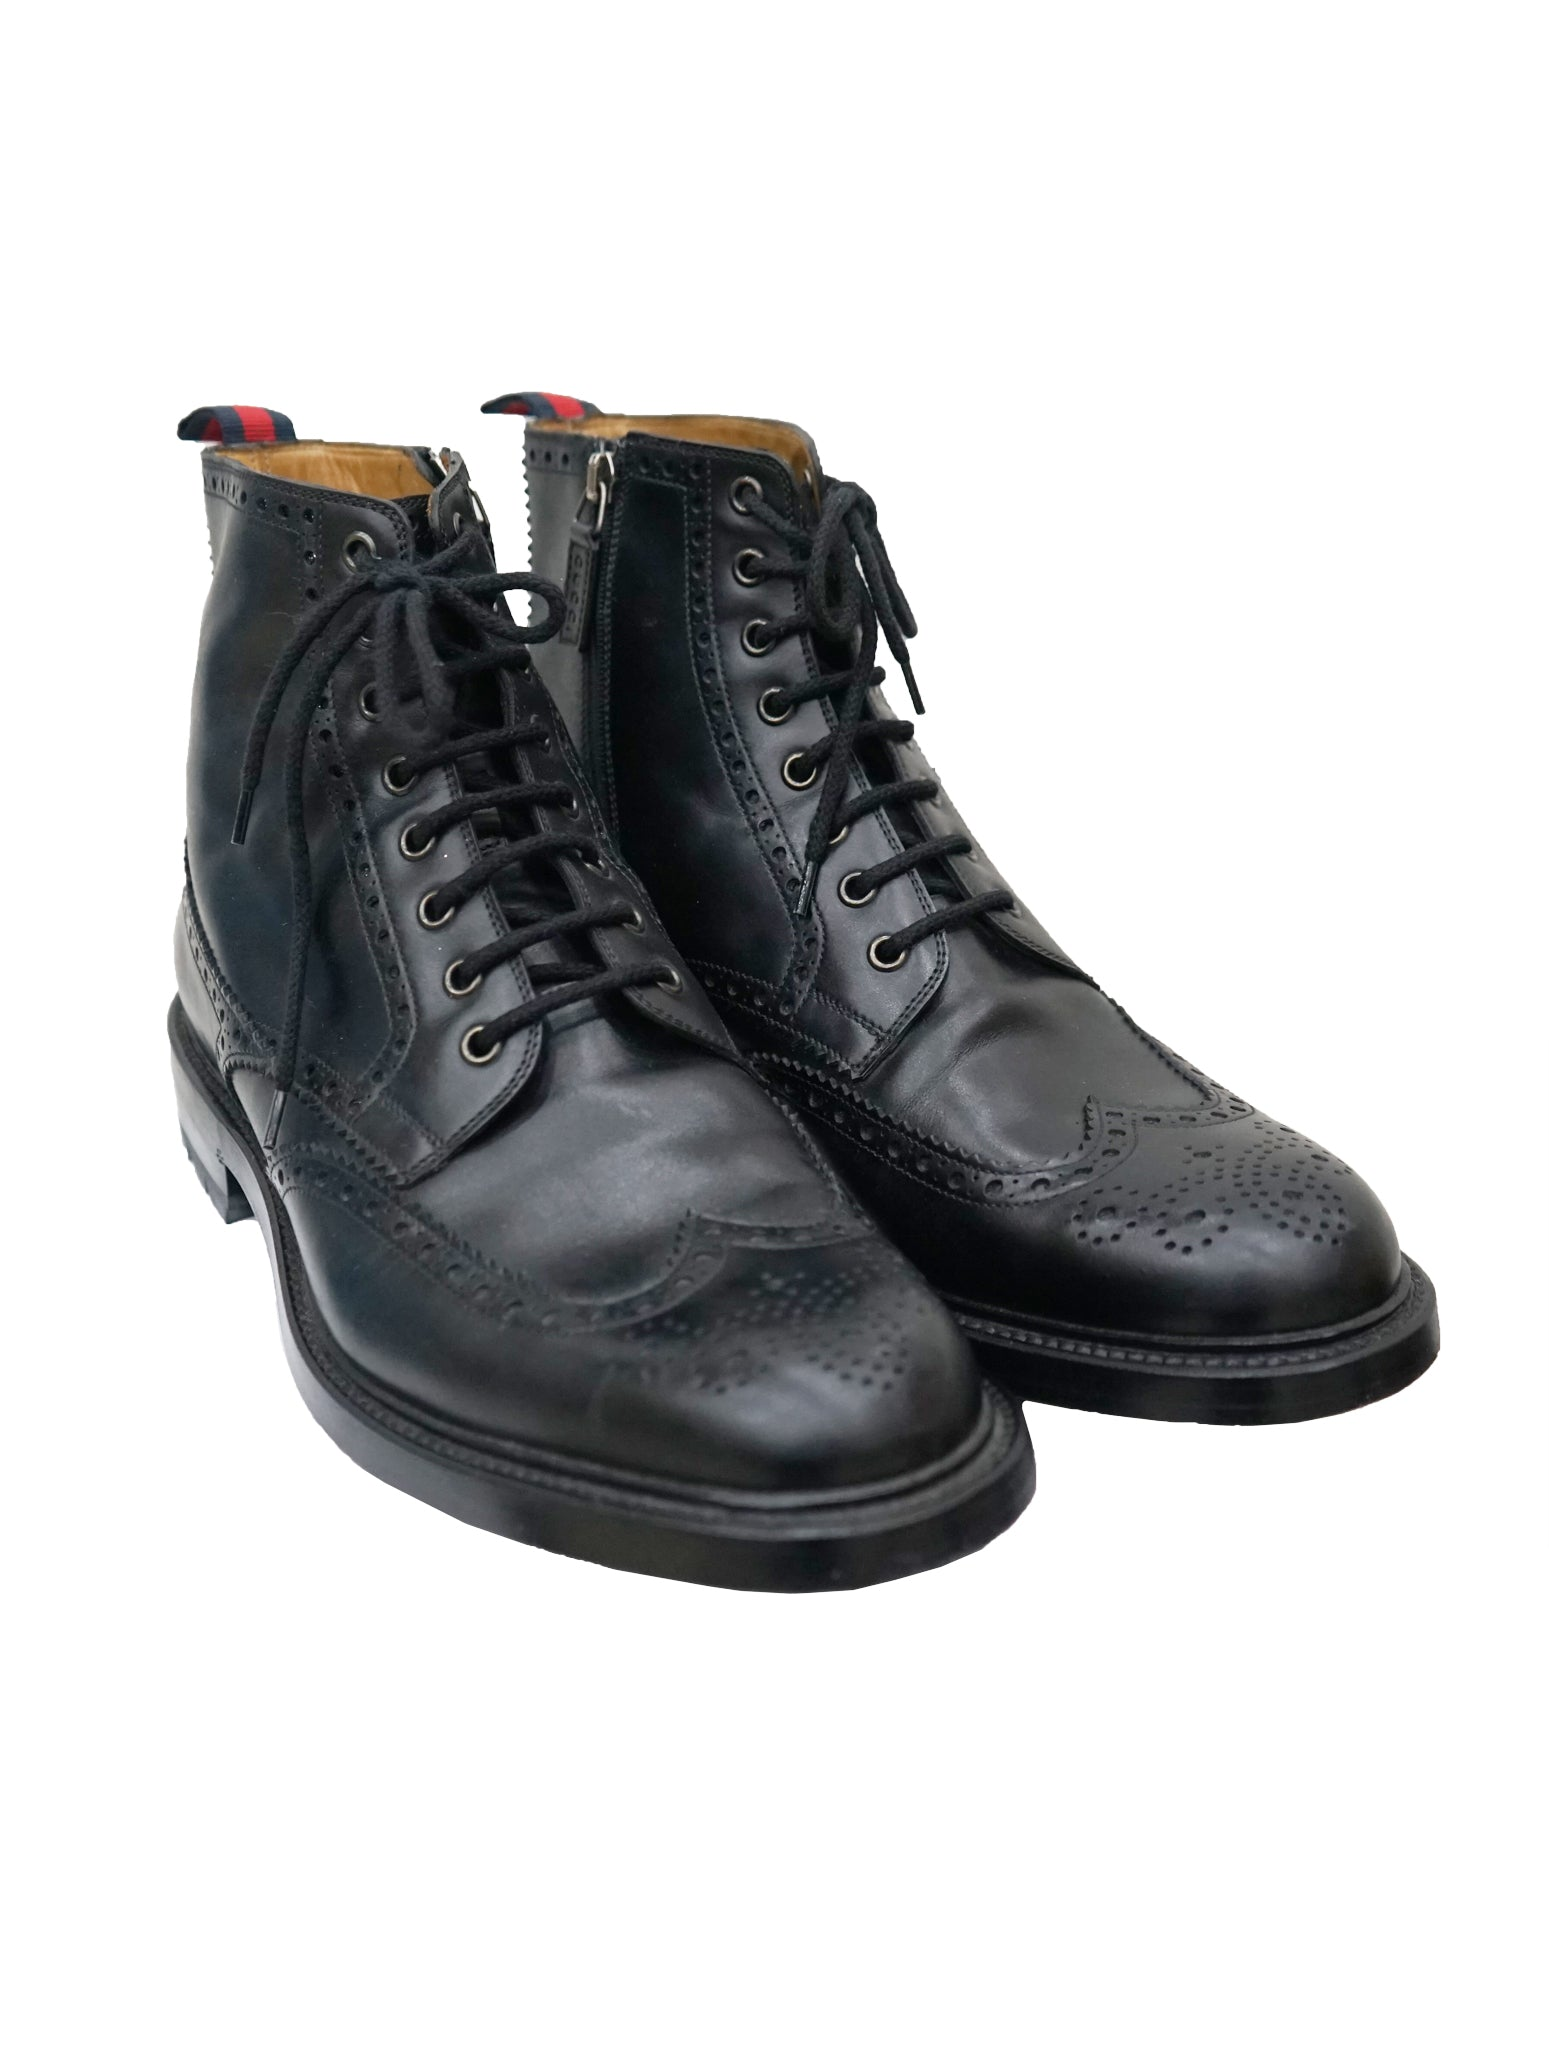 BLACK LEATHER BROGUE LACE UP BOOTS